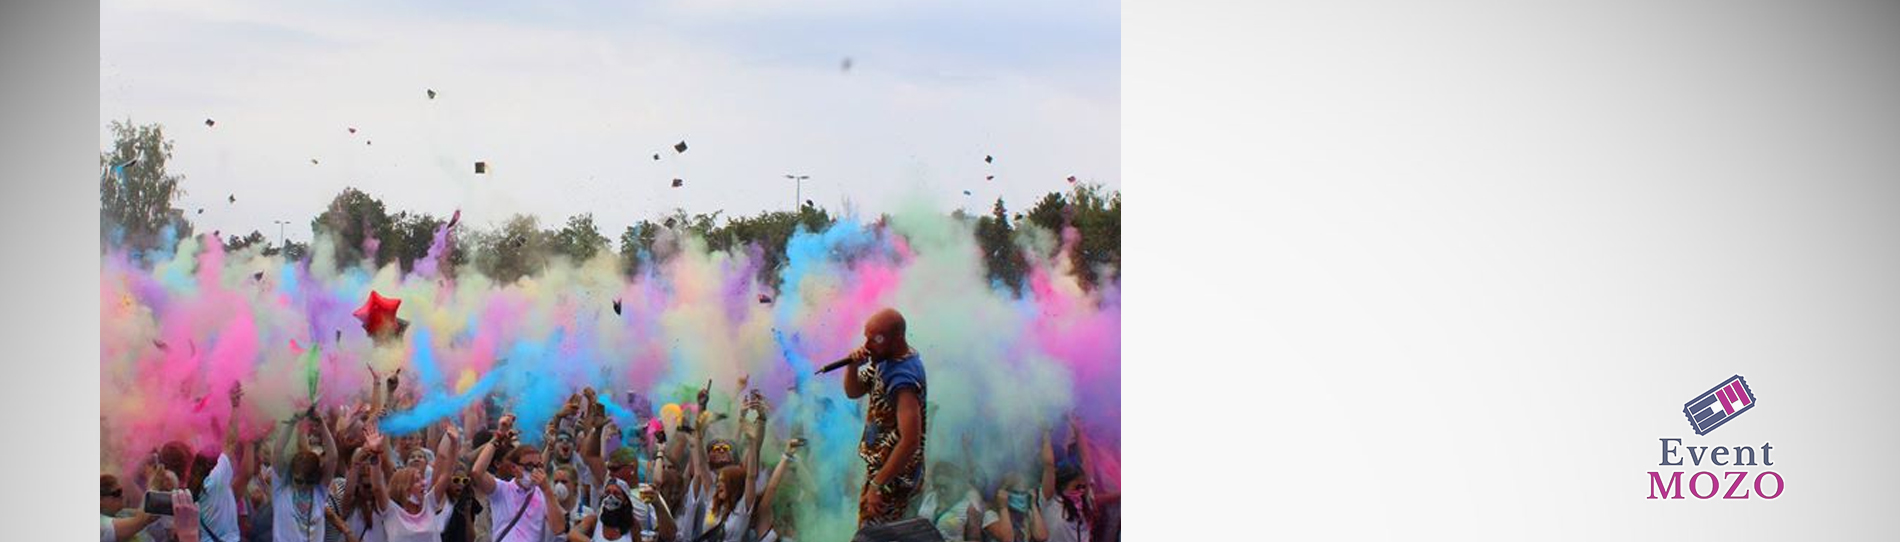 EventMozo Festival Of Colors 2018